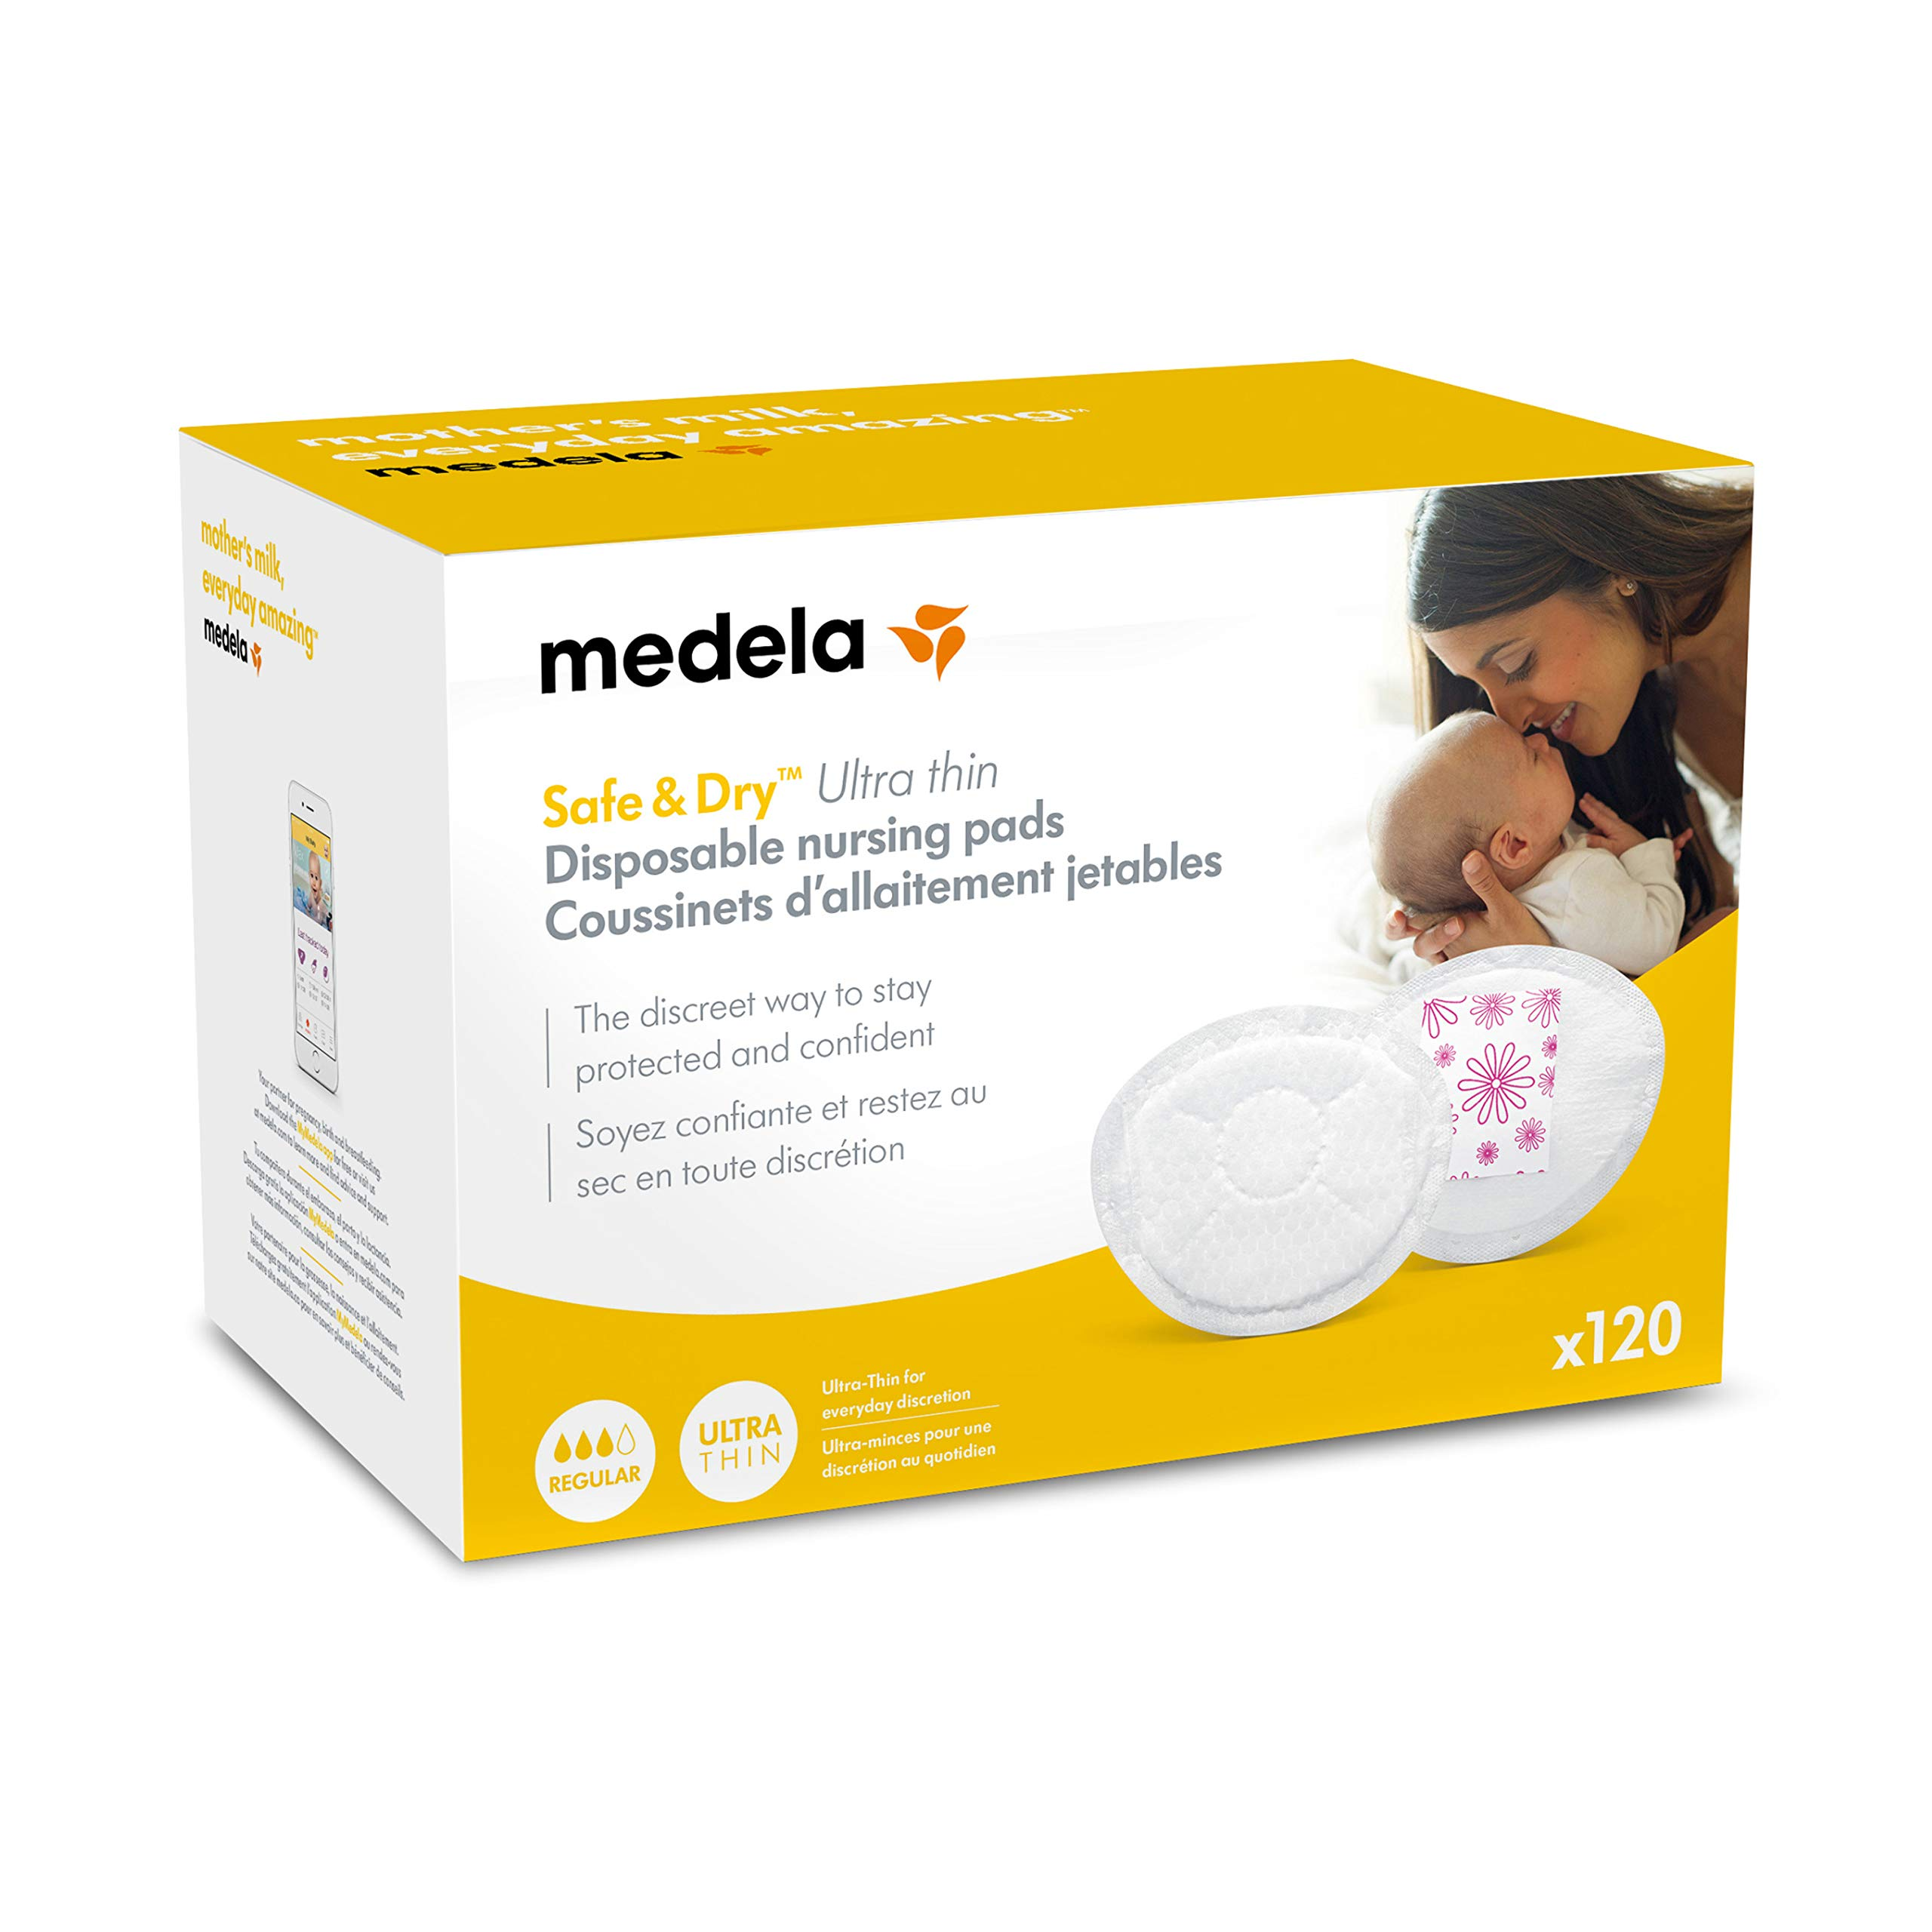 Medela Safe & Dry Ultra Thin Disposable Nursing Pads, 120 Count Breast Pads for Breastfeeding, Leakproof Design, Slender and Contoured for Optimal Fit and Discretion by Medela